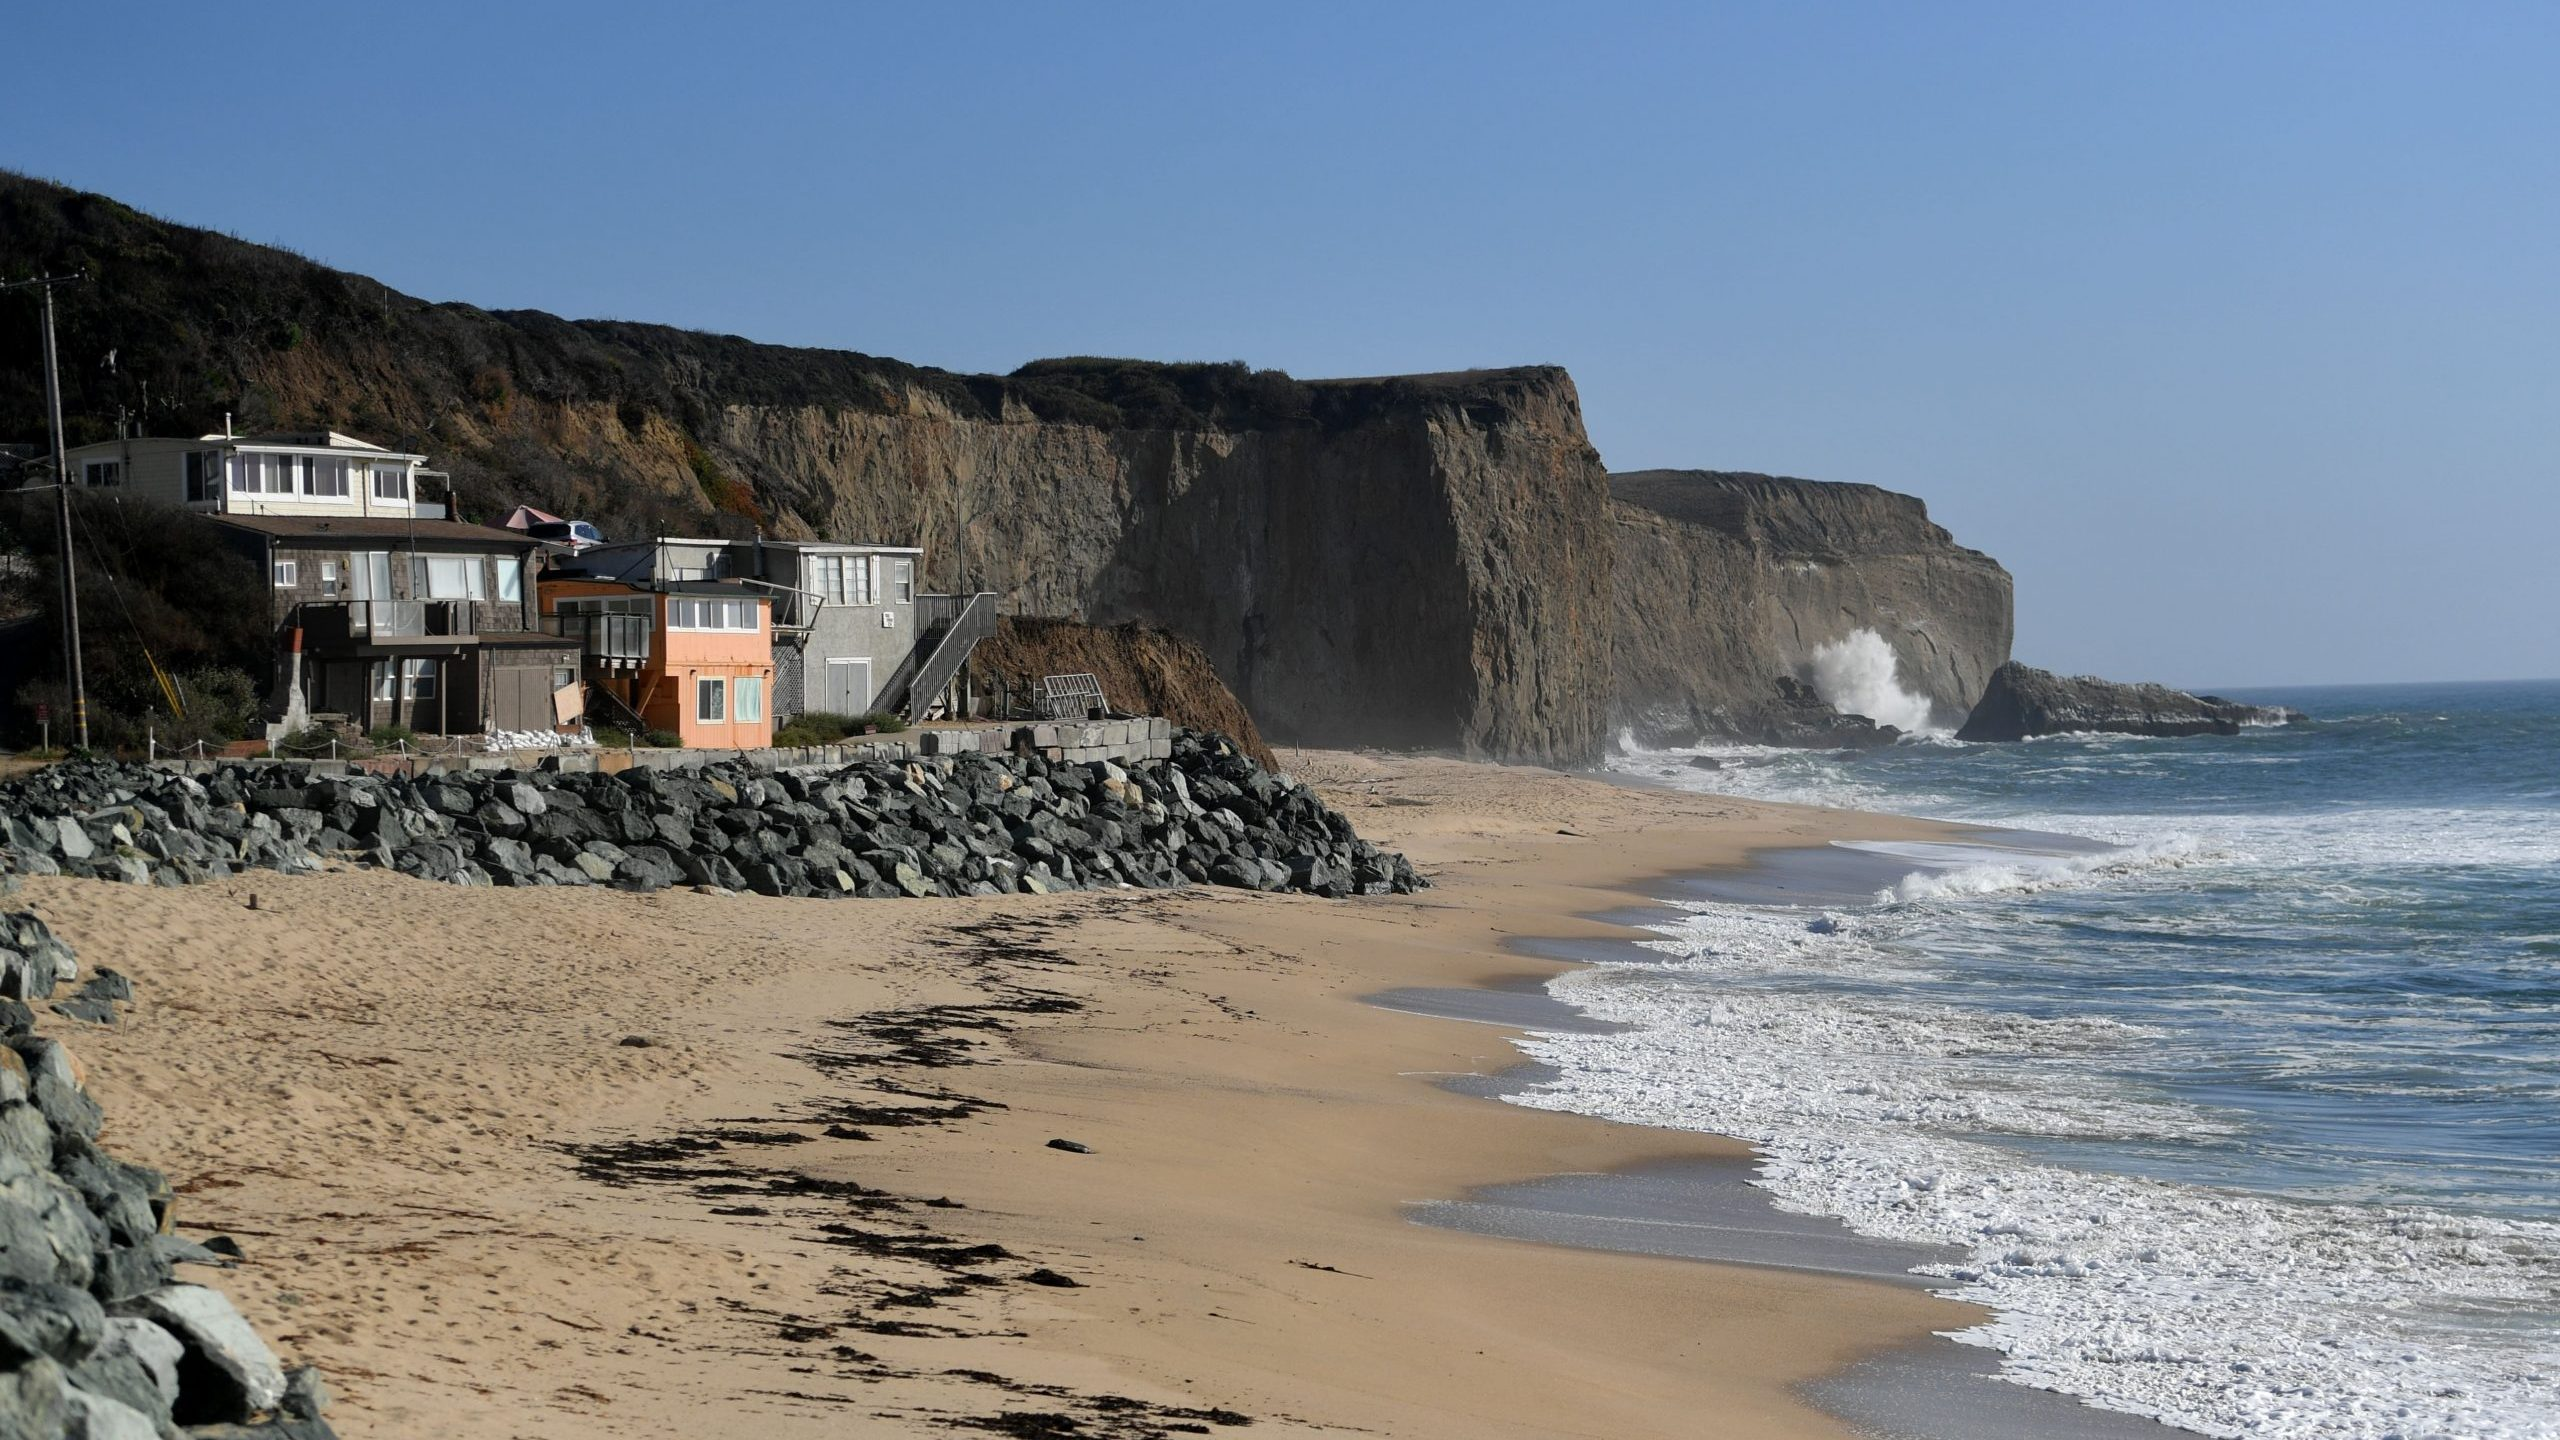 Martin's Beach is seen in Half Moon Bay on Sept. 19, 2018. (Credit: JOSH EDELSON/AFP via Getty Images)